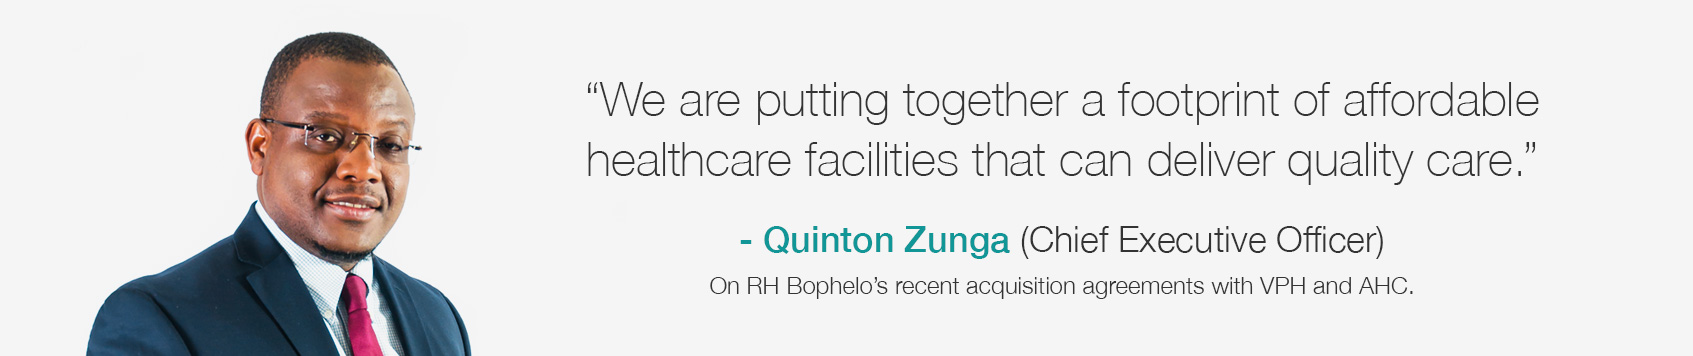 Quinton Zunga on RH Bophelo's recent acquisition agreements with VPH and AHC